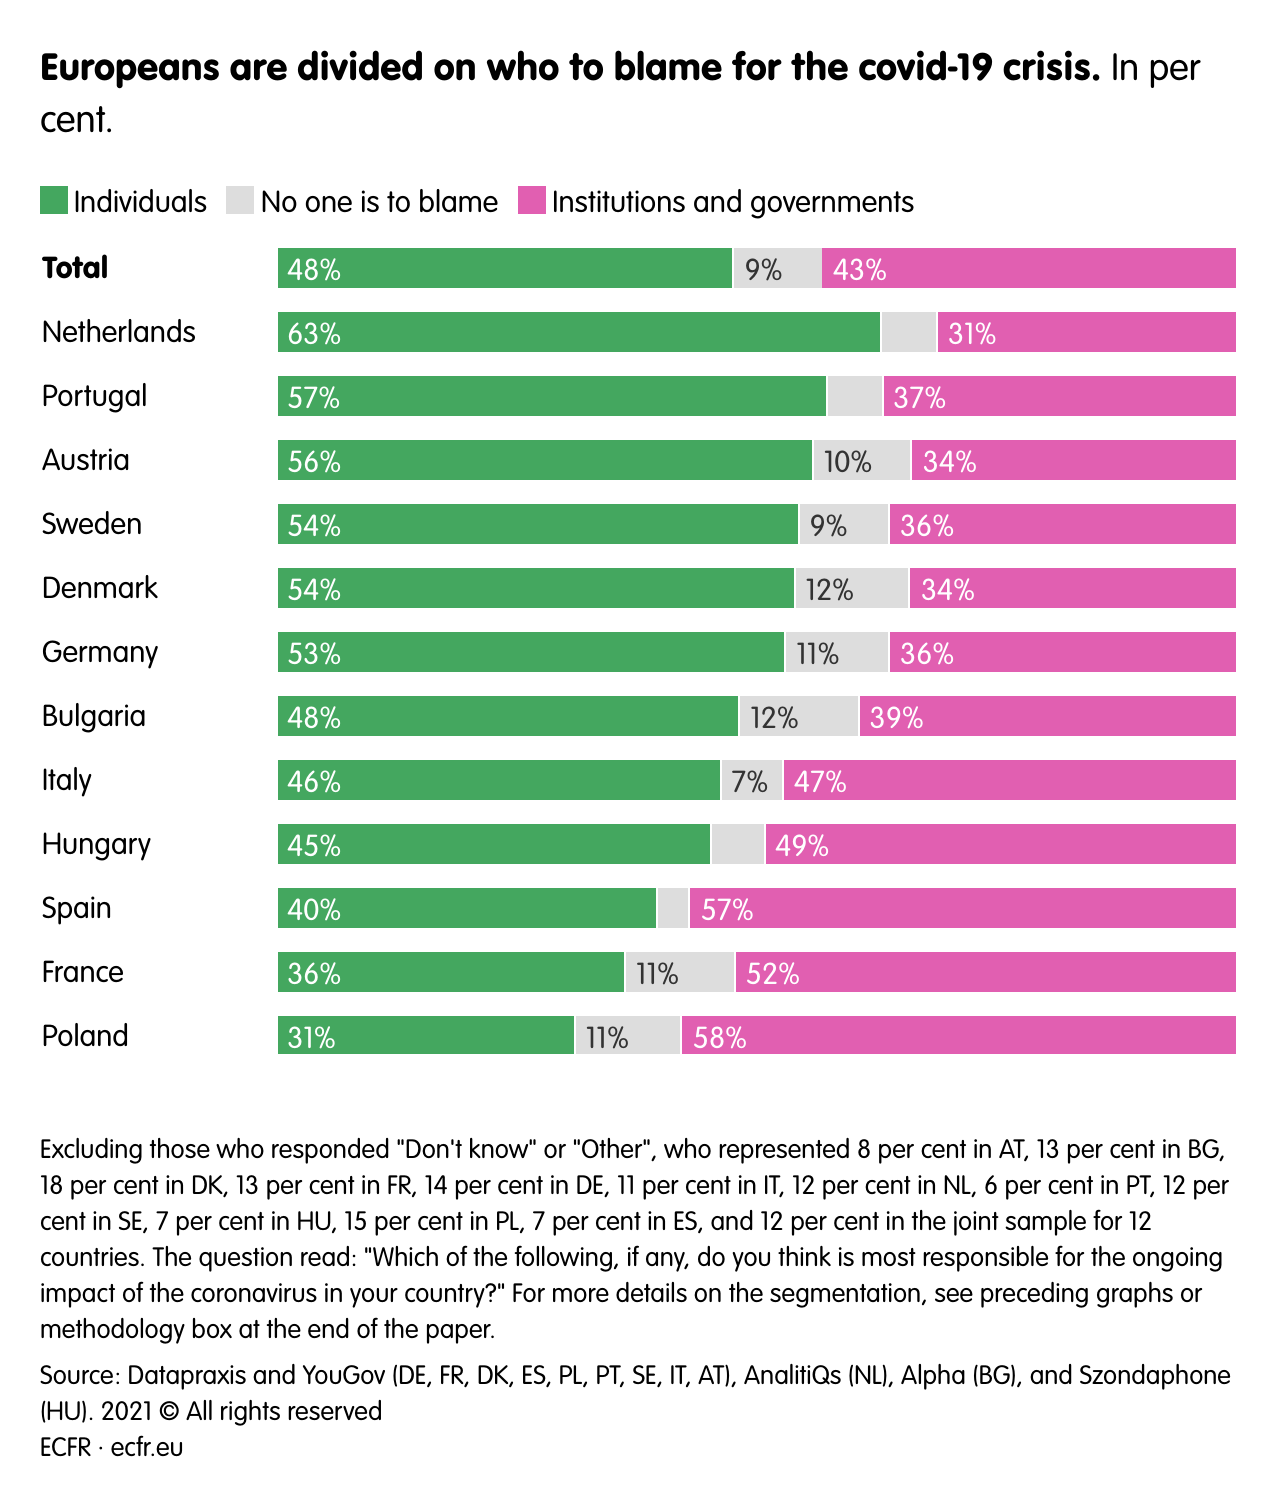 Europeans are divided on who to blame for the covid-19 crisis.